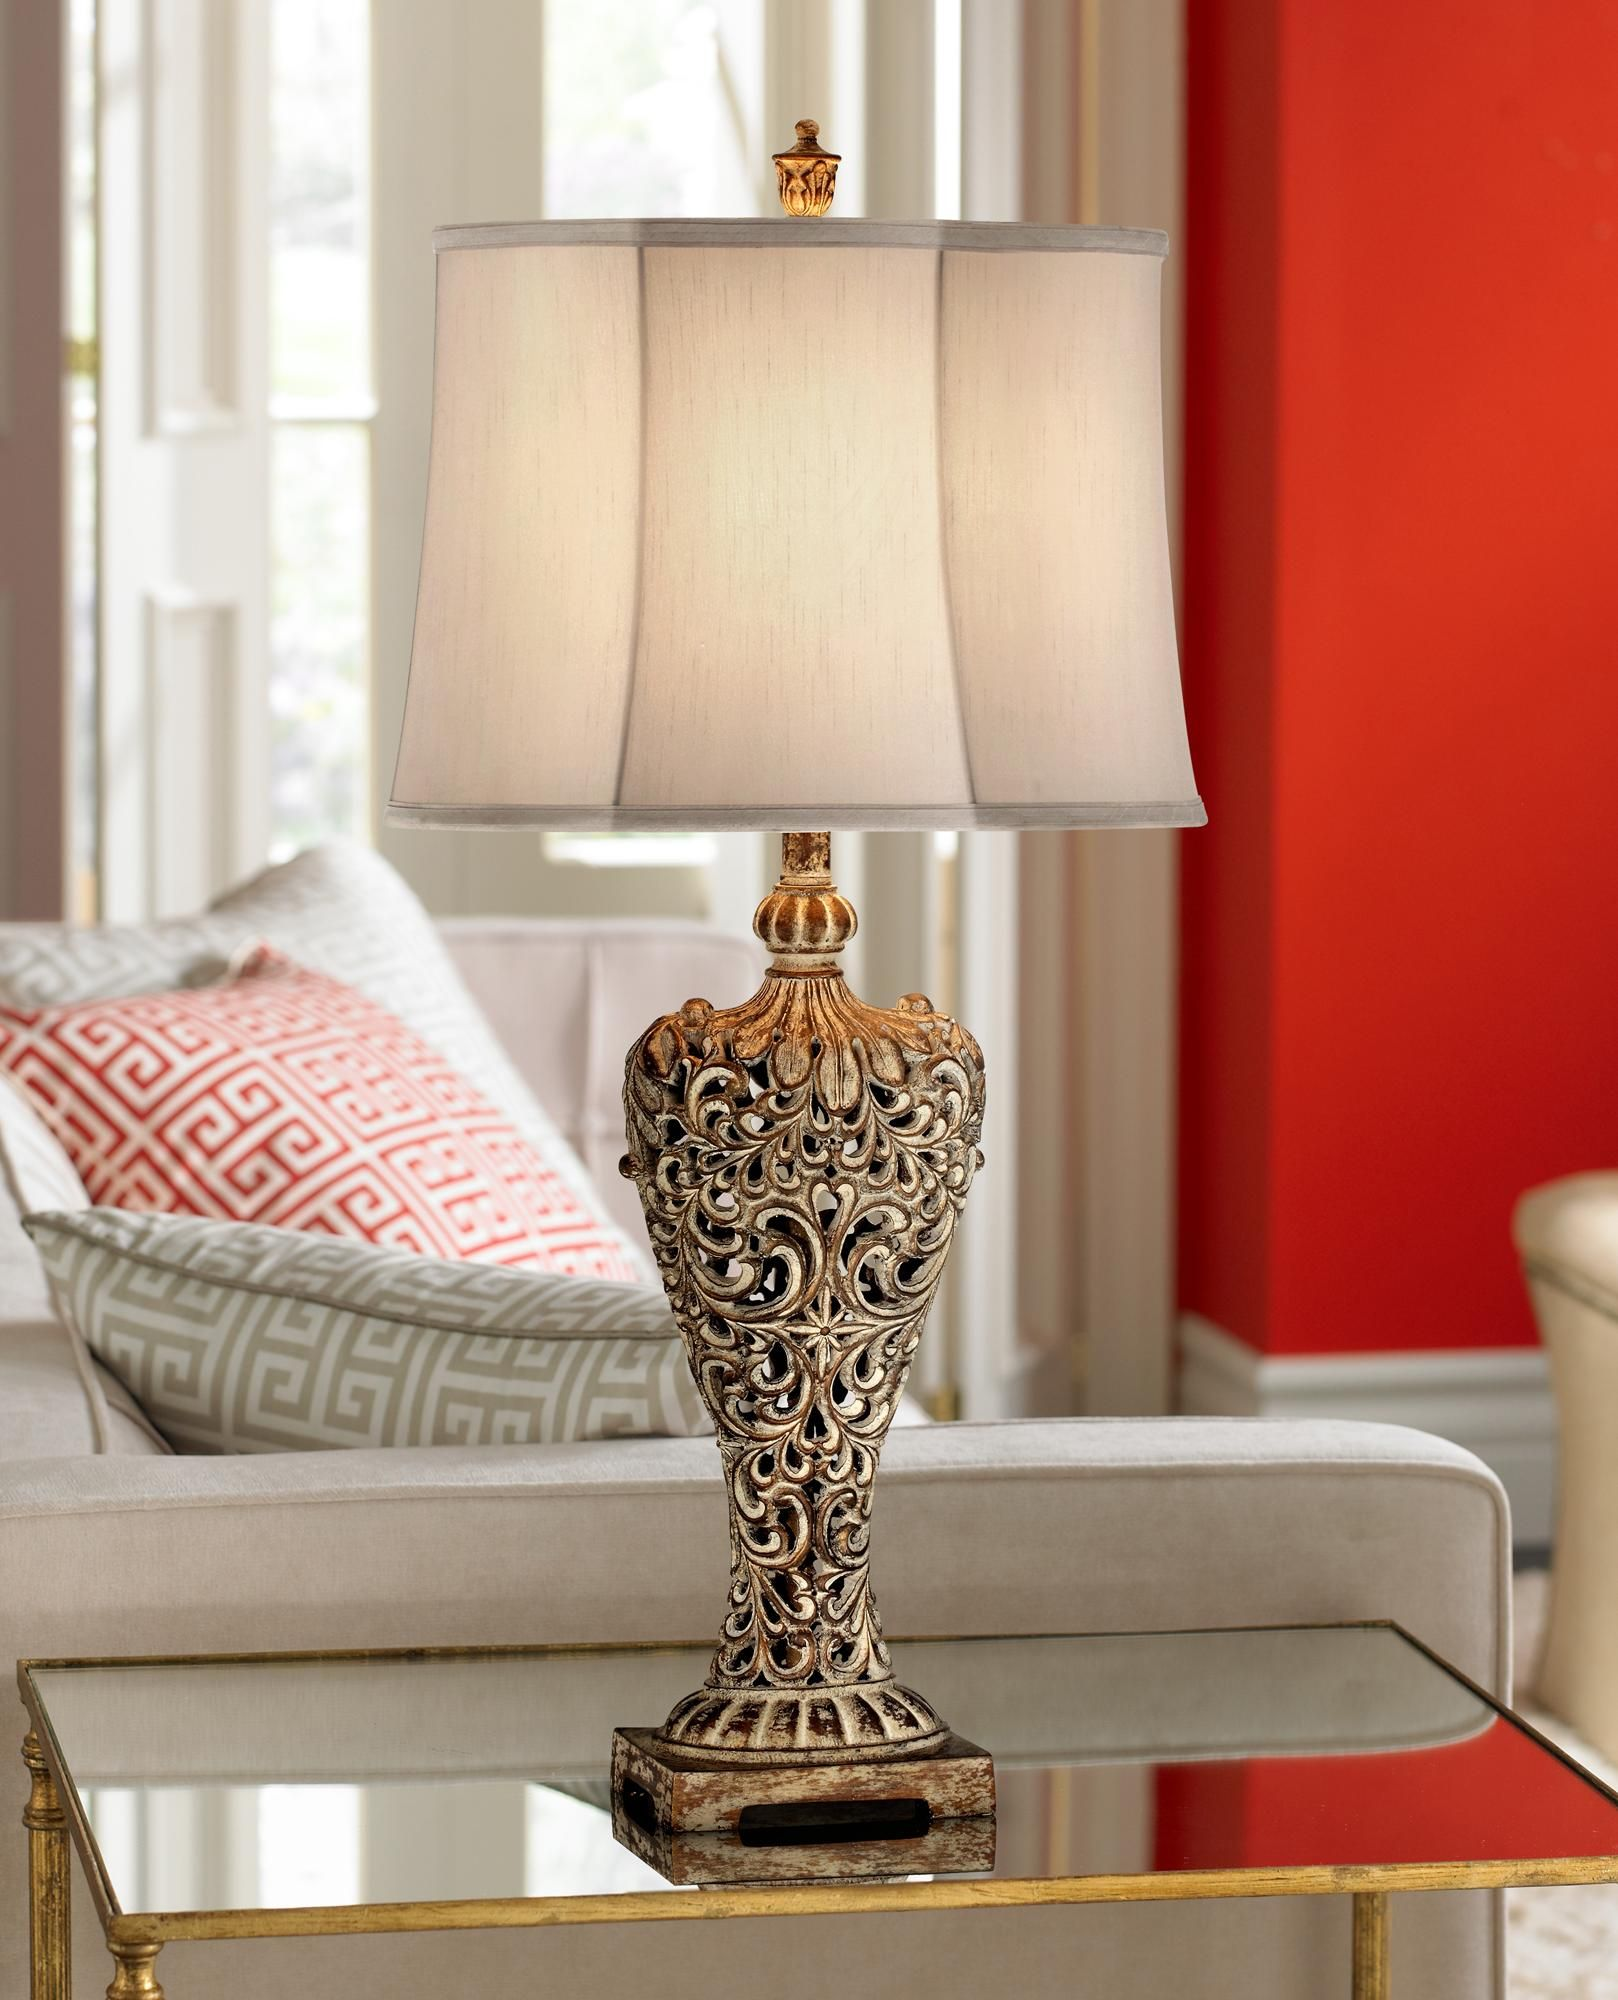 Elle Carved Antique Bronze Classic Table Lamp 3j928 Lamps Plus Classic Table Lamp Antique Table Lamps Traditional Table Lamps